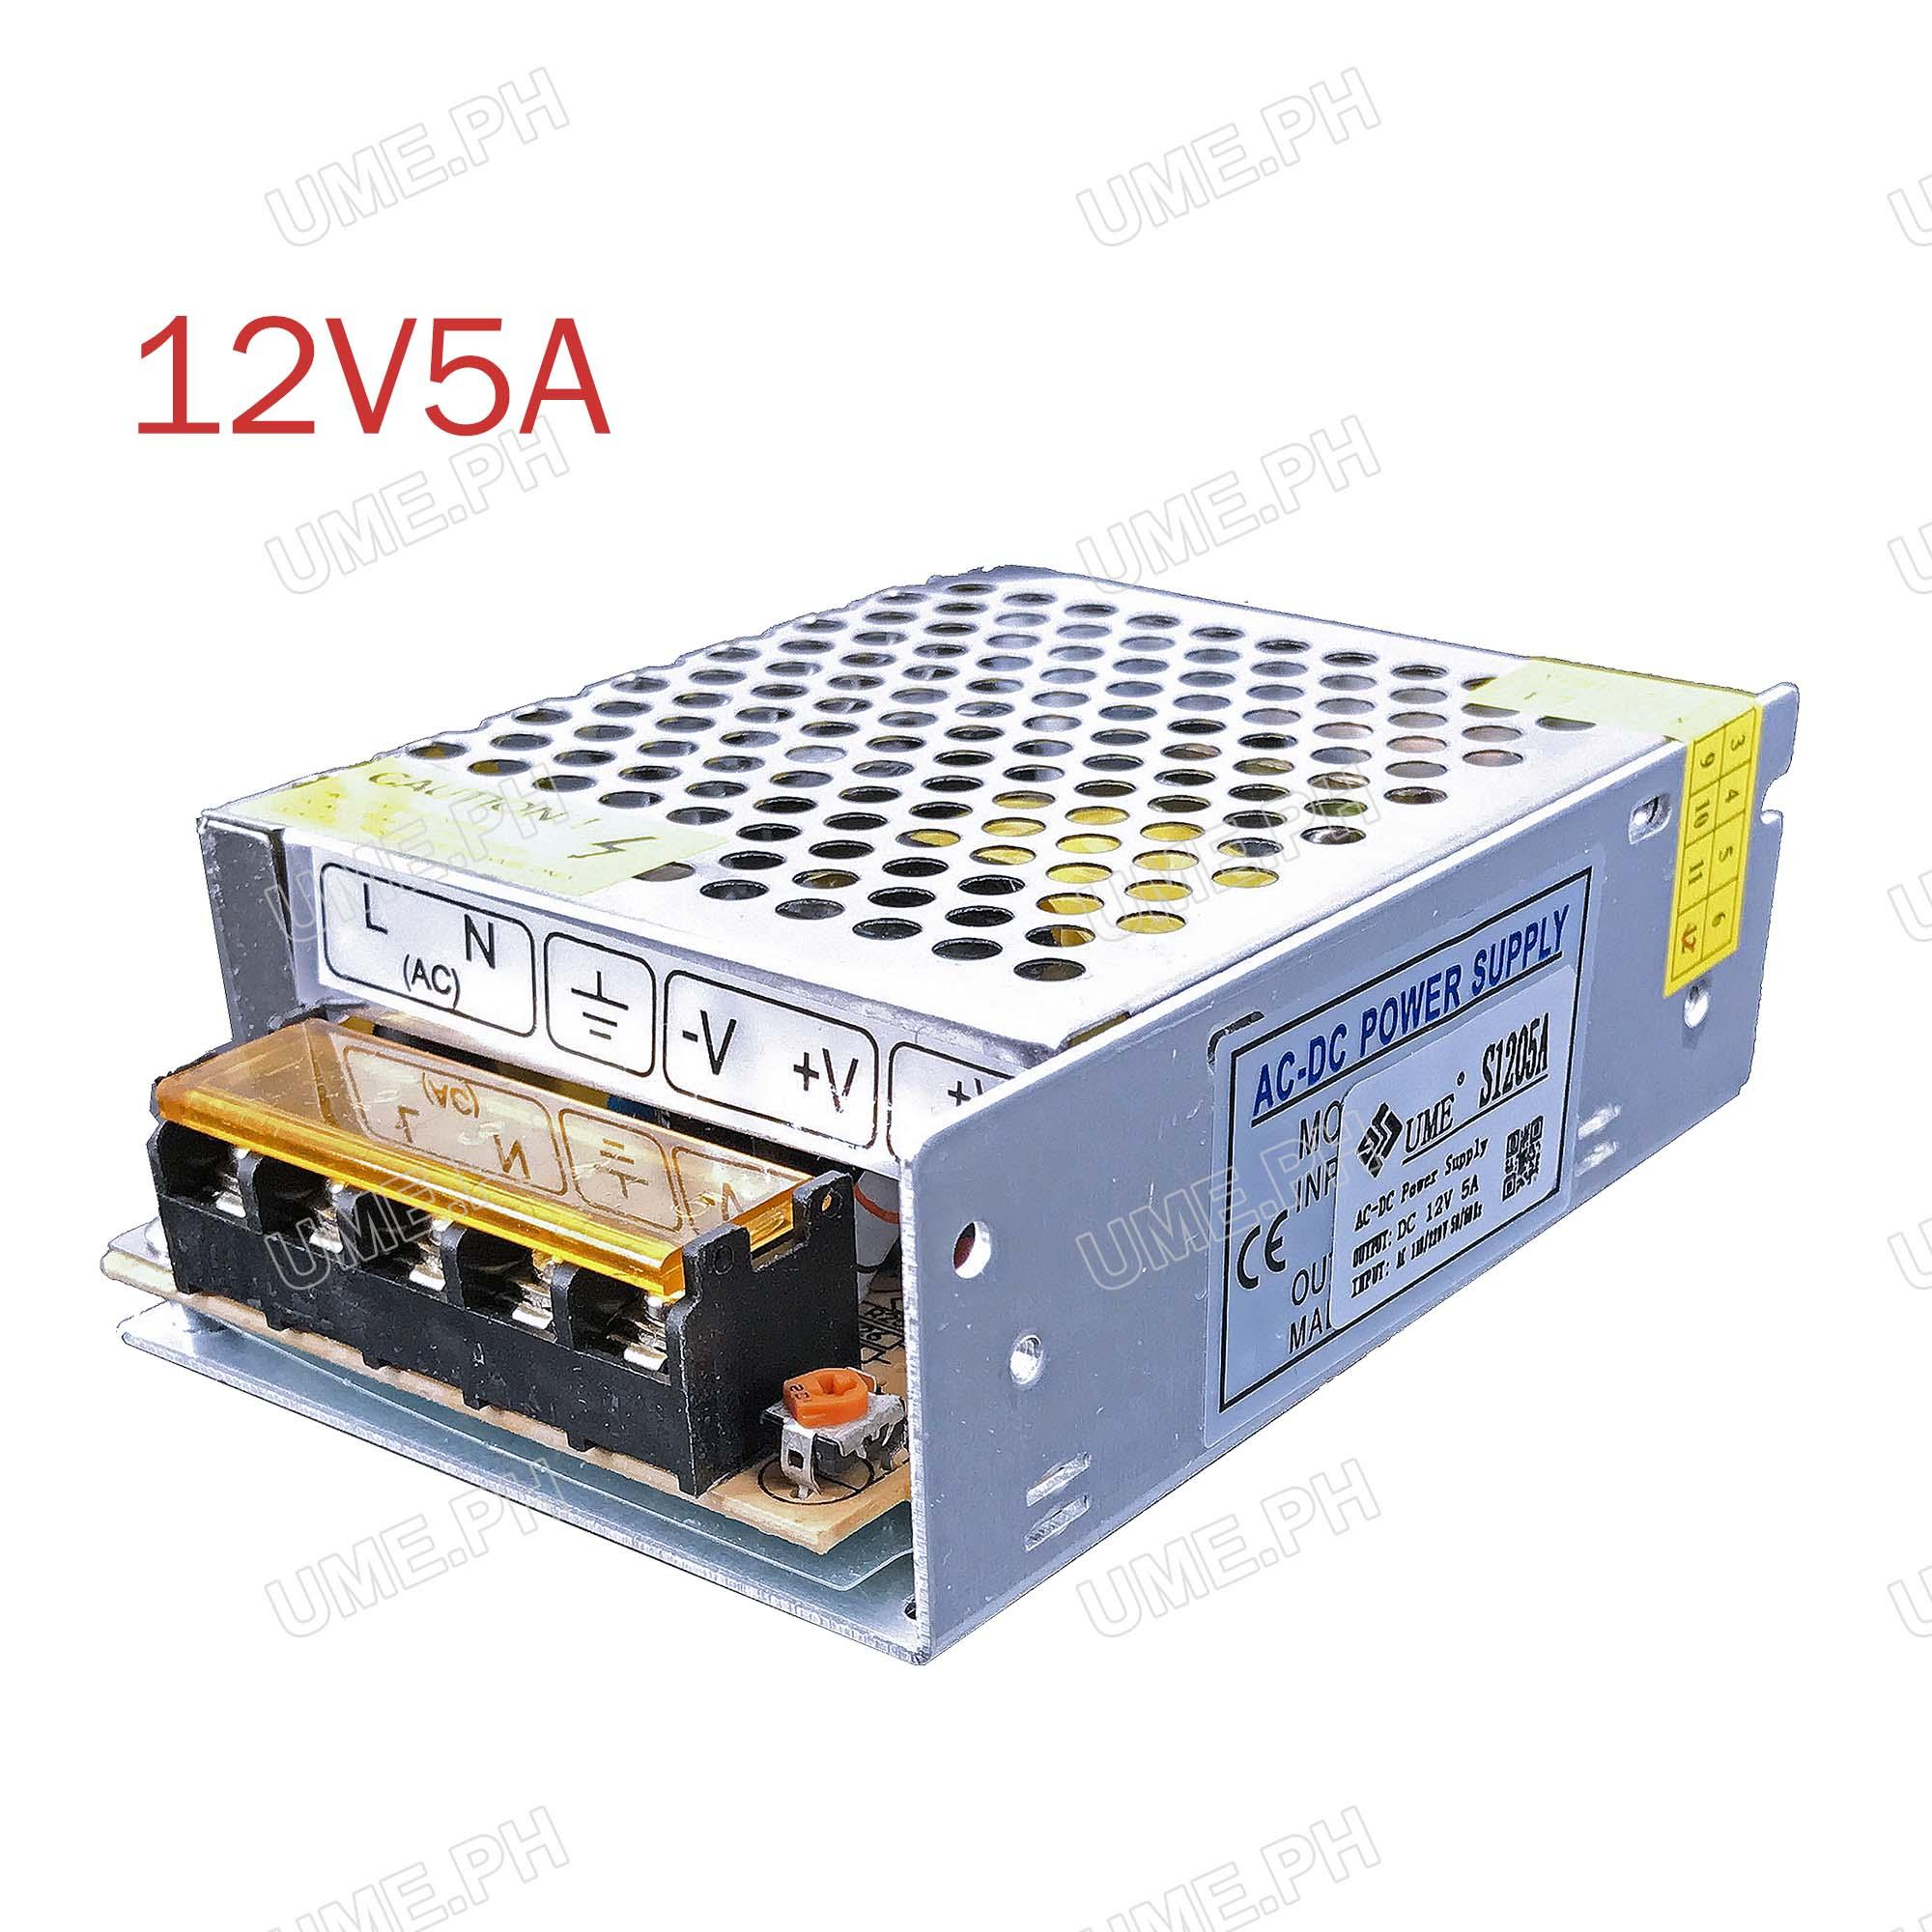 Pc Power Supply For Sale Computer Prices Brands Antec Atx12v Tester Ume Cctv Centralize Adapter Dc 12v5a S1205a